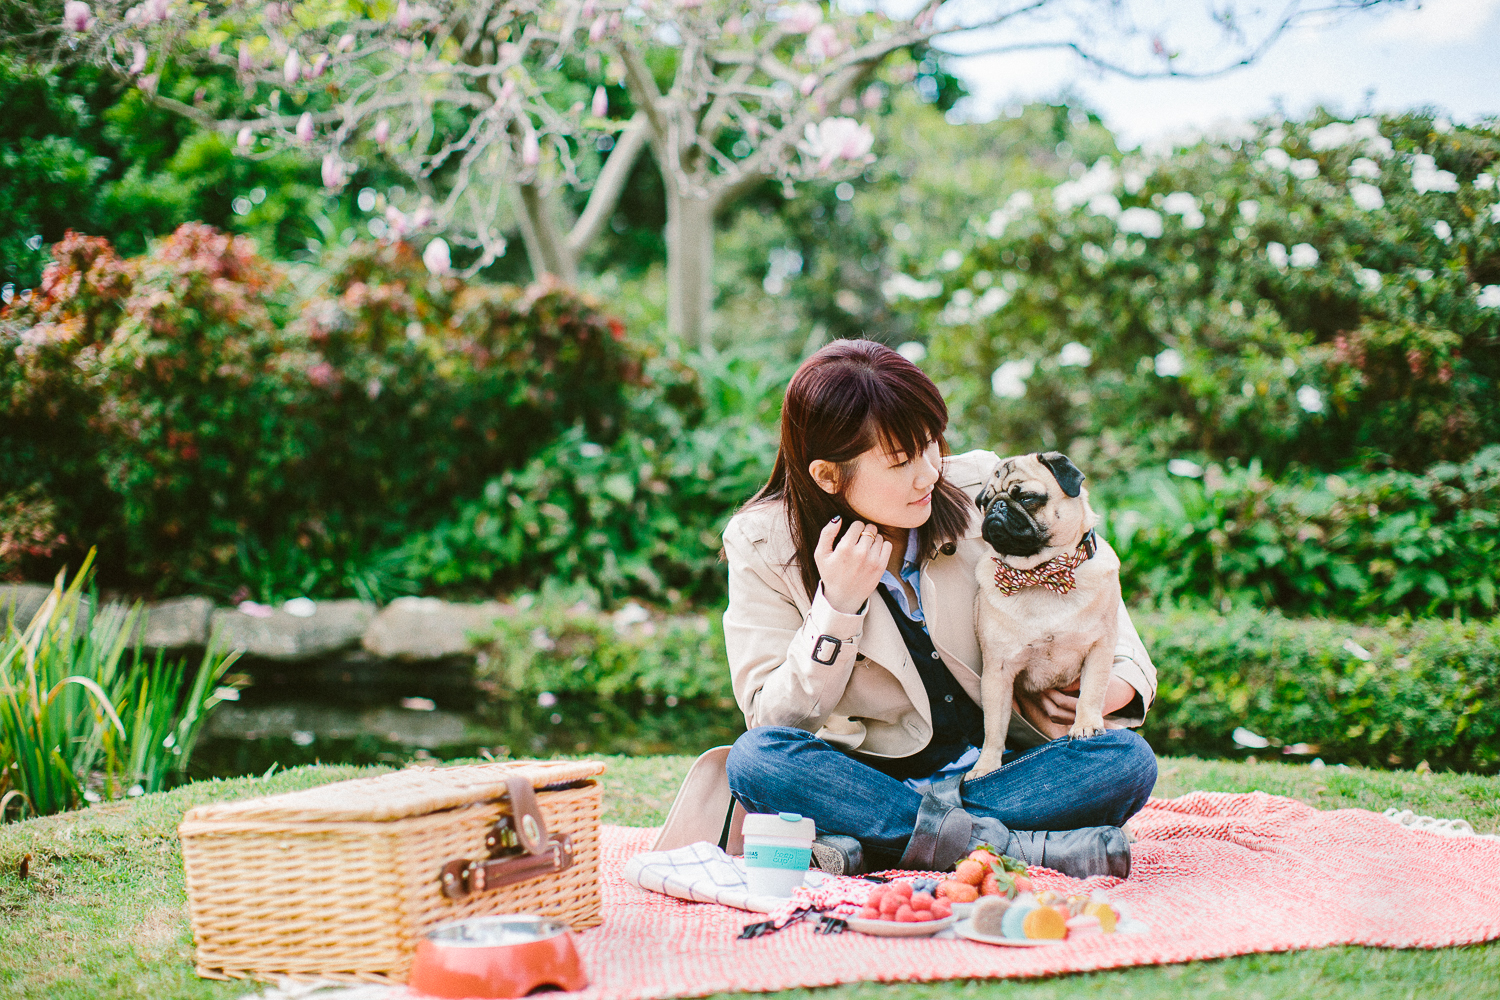 twoguineapigs_pet_photography_oh_jaffa_picnic_pugs_1500-9.jpg